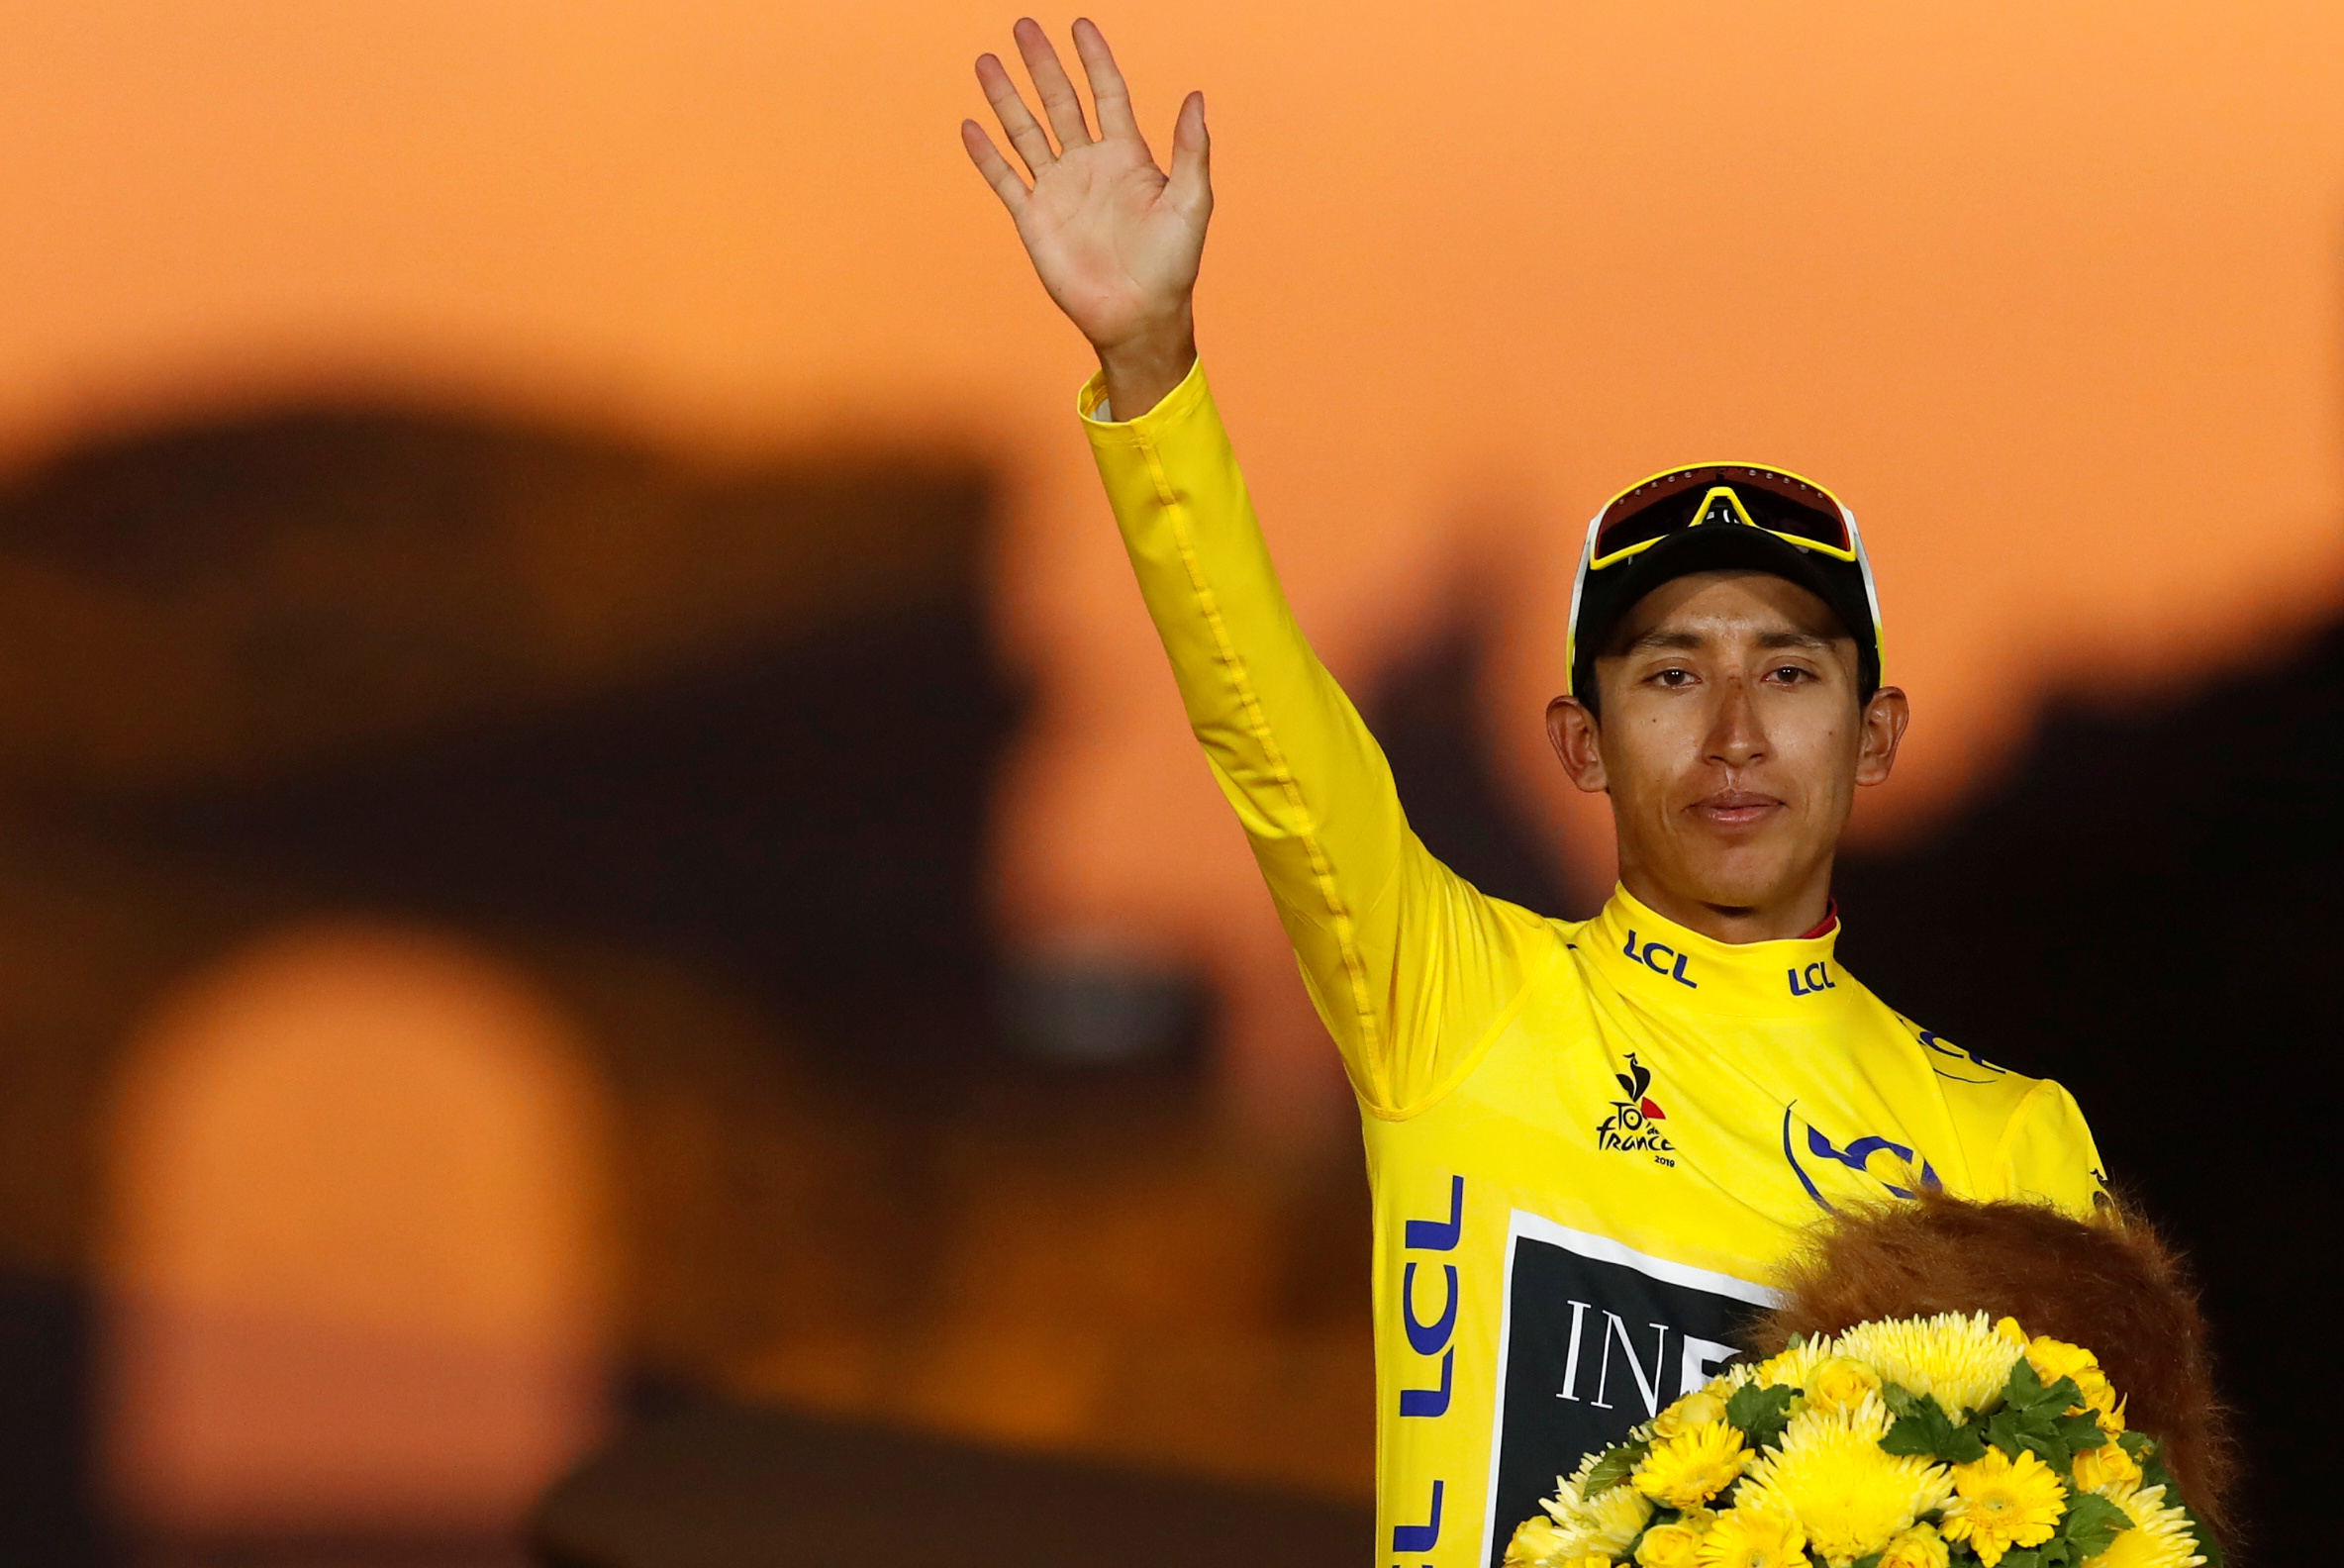 Egan Bernal is the youngest rider to win the race in 110 years. Photo: Reuters